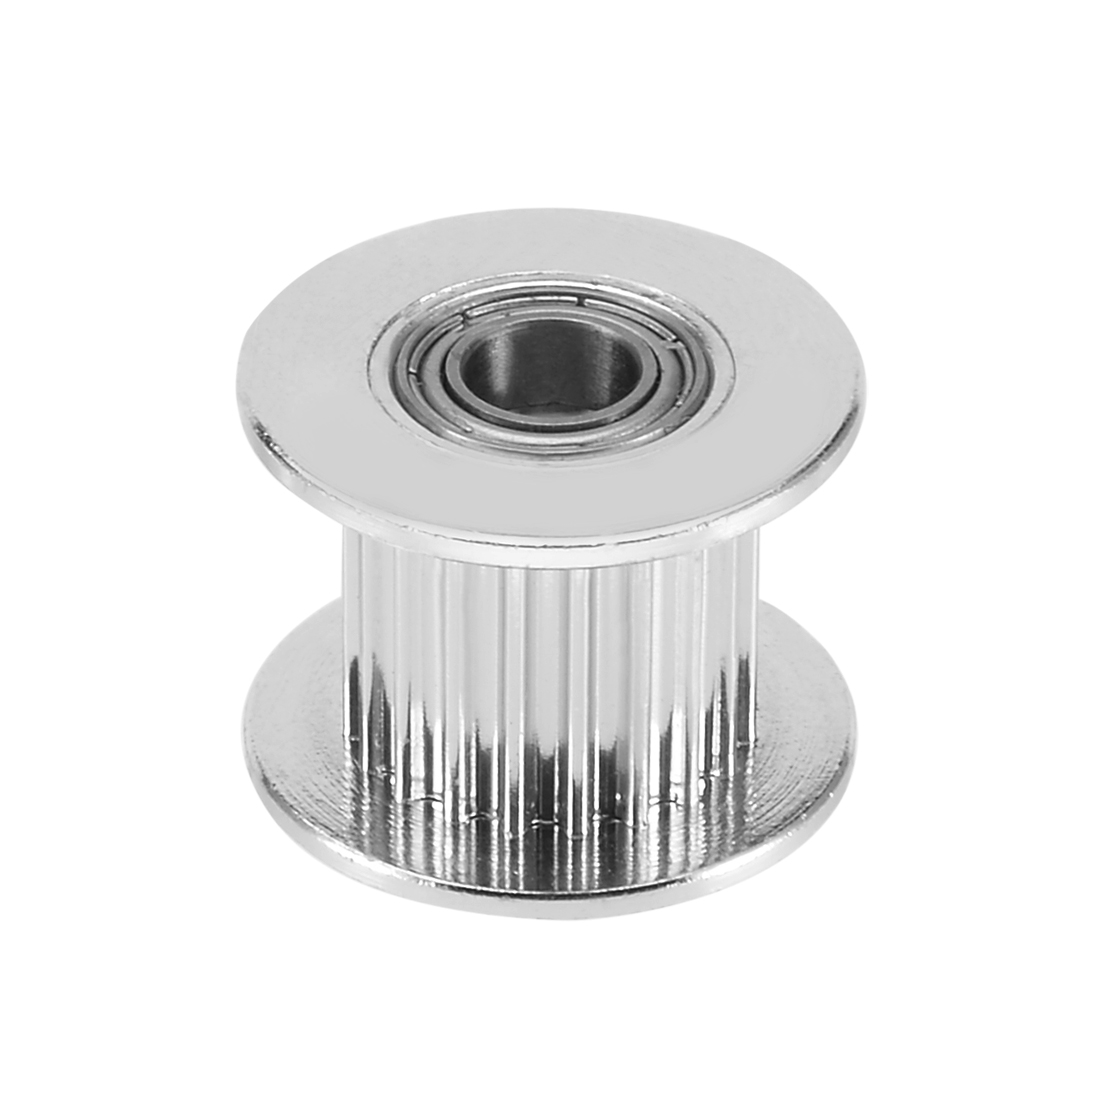 3D Printer Aluminum GT2 20T 5mm Bore Timing Idler Pulley Flange with Dual Ball Bearings for 10mm Timing Belt